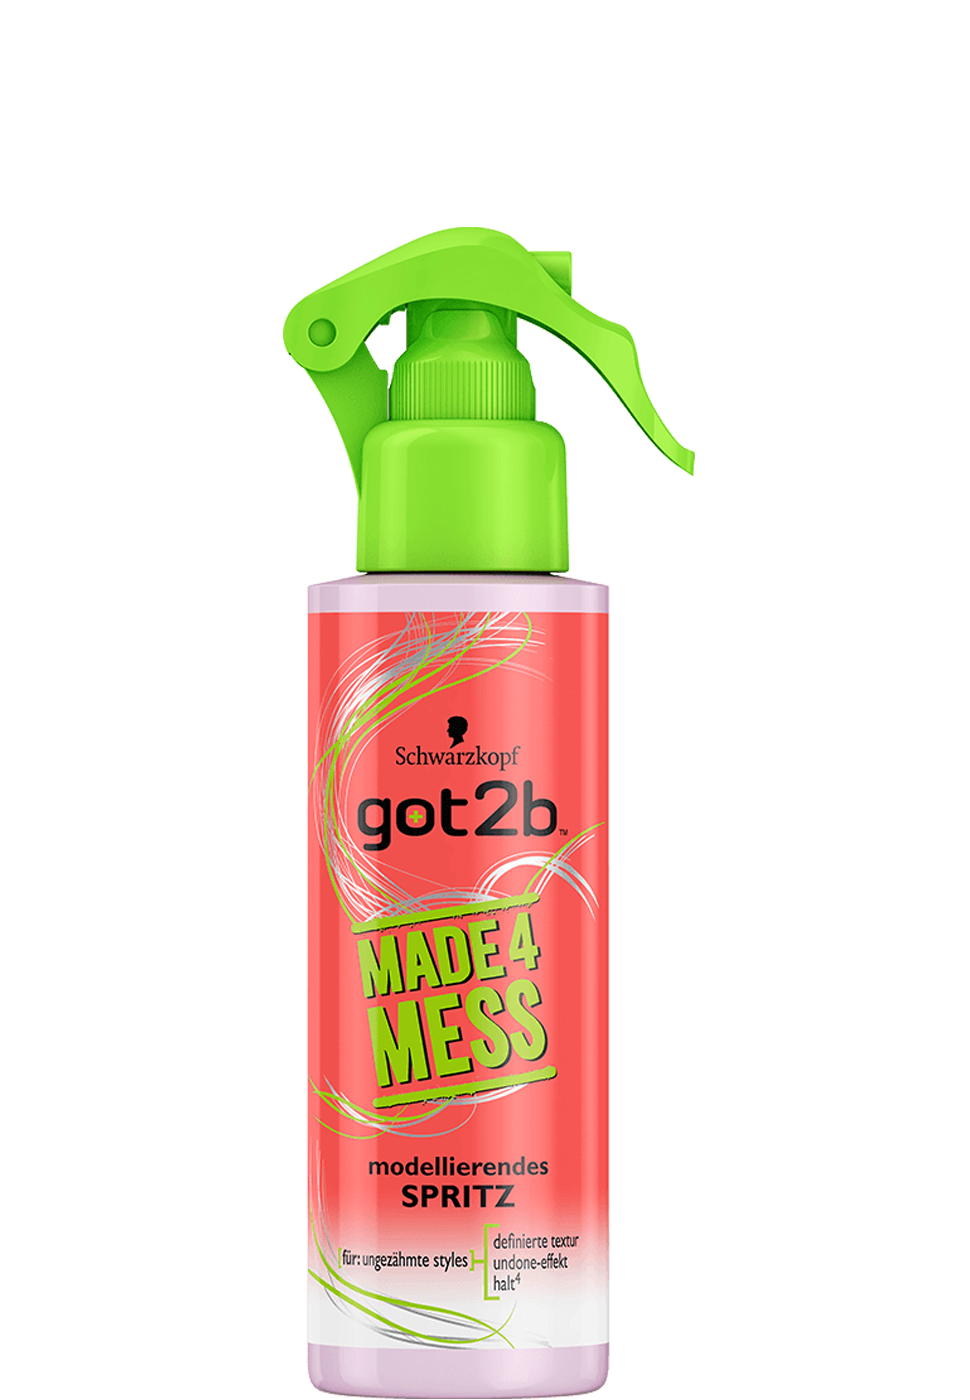 got2b made 4 mess Hajformázó Spray